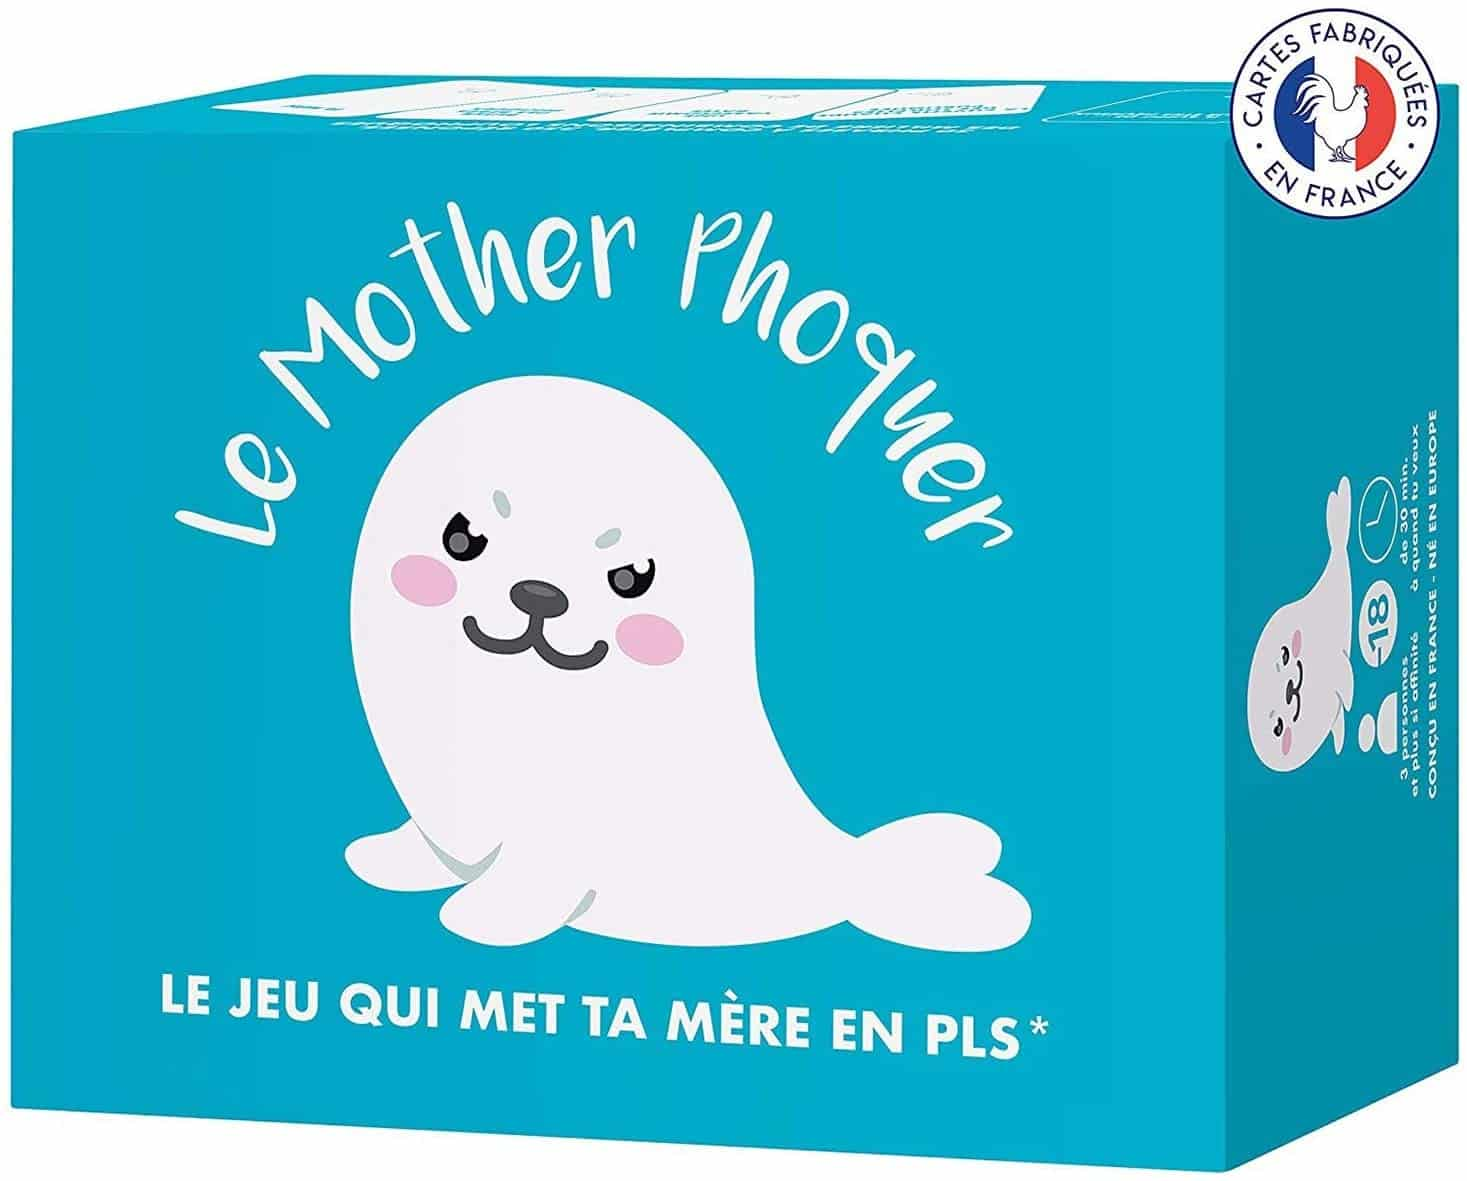 Le Mother Phoquer - Cards against humanity en français !